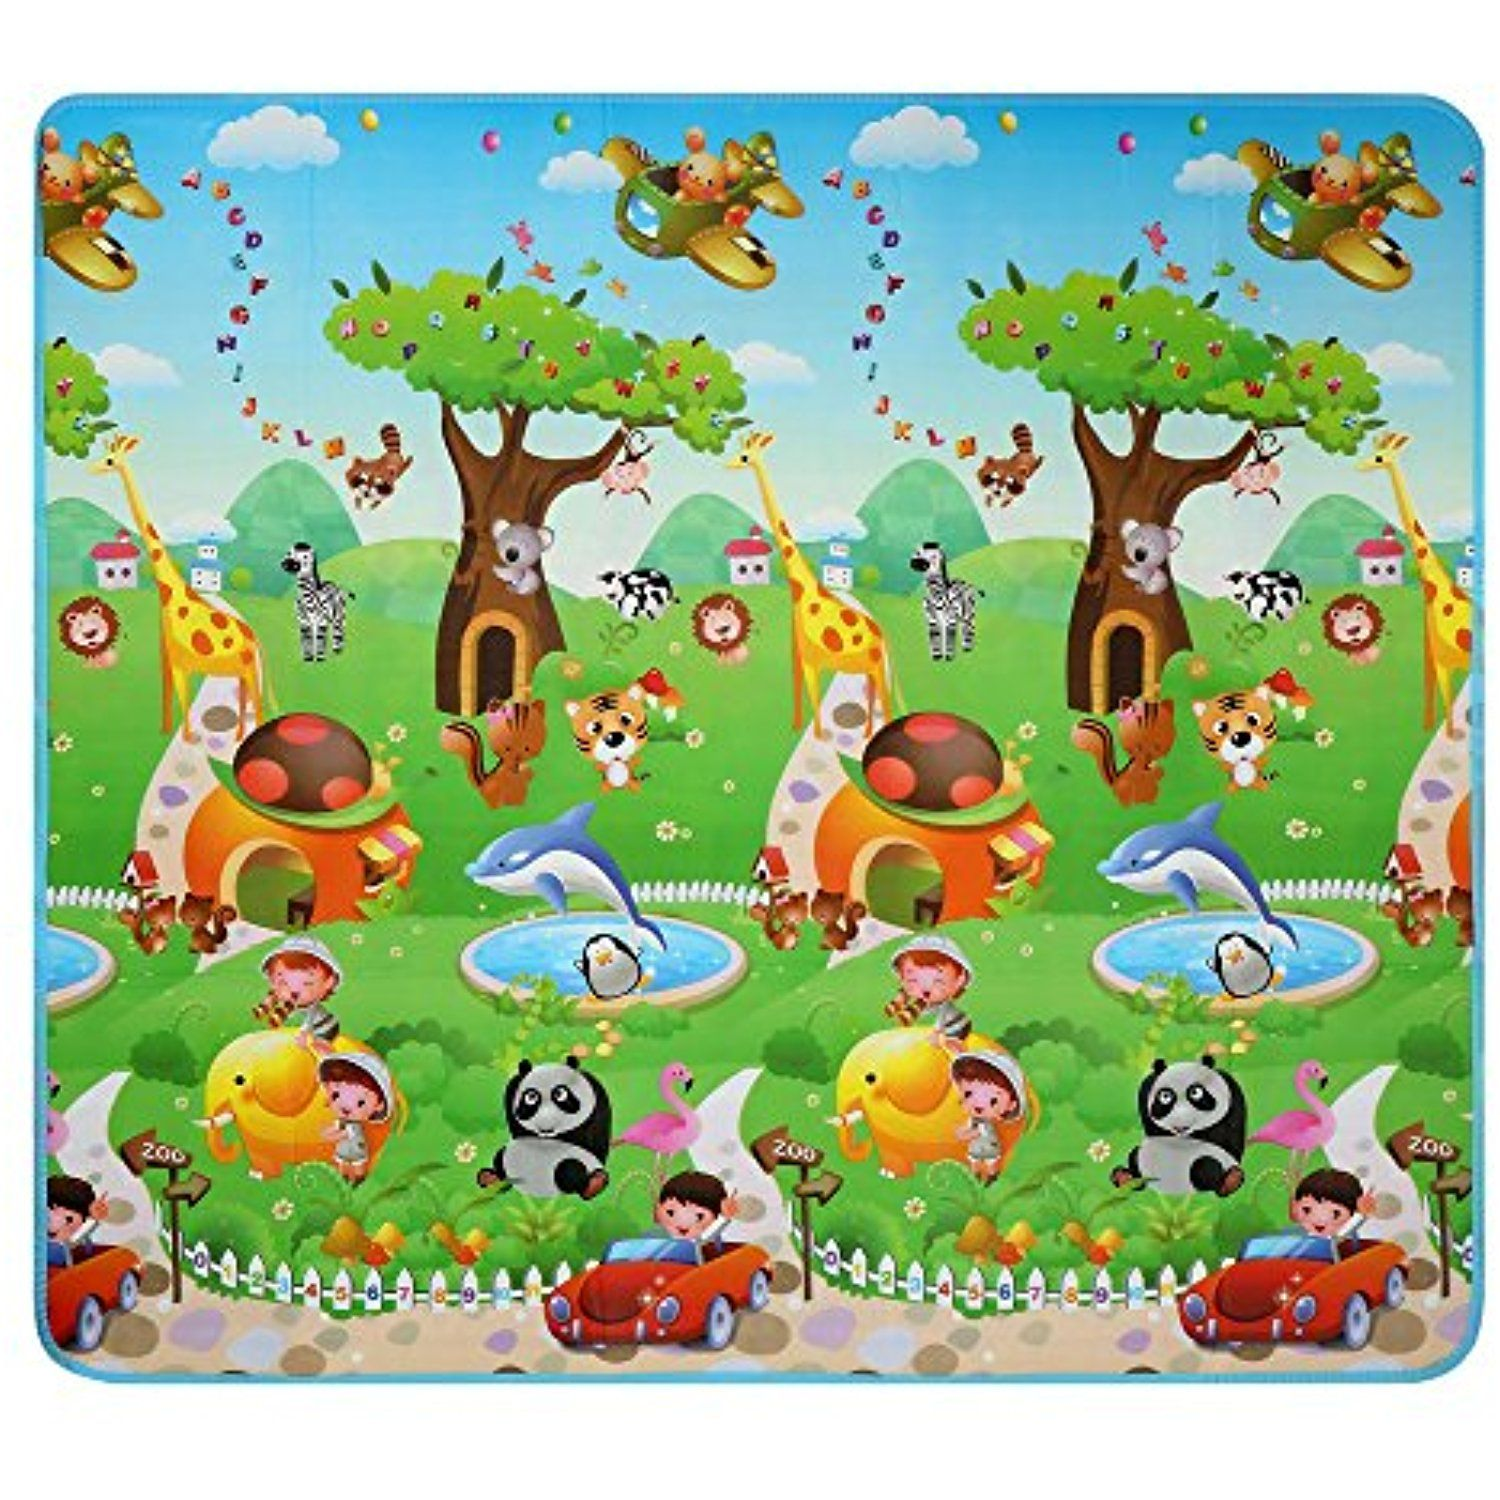 Balanu Baby Play Mat Foam Floor Gym Non Toxic Non Slip 70 2x78 Inches Reversible Thick Extra Large Foam Playm Baby Play Mat Foam Baby Play Mat Cool Baby Stuff